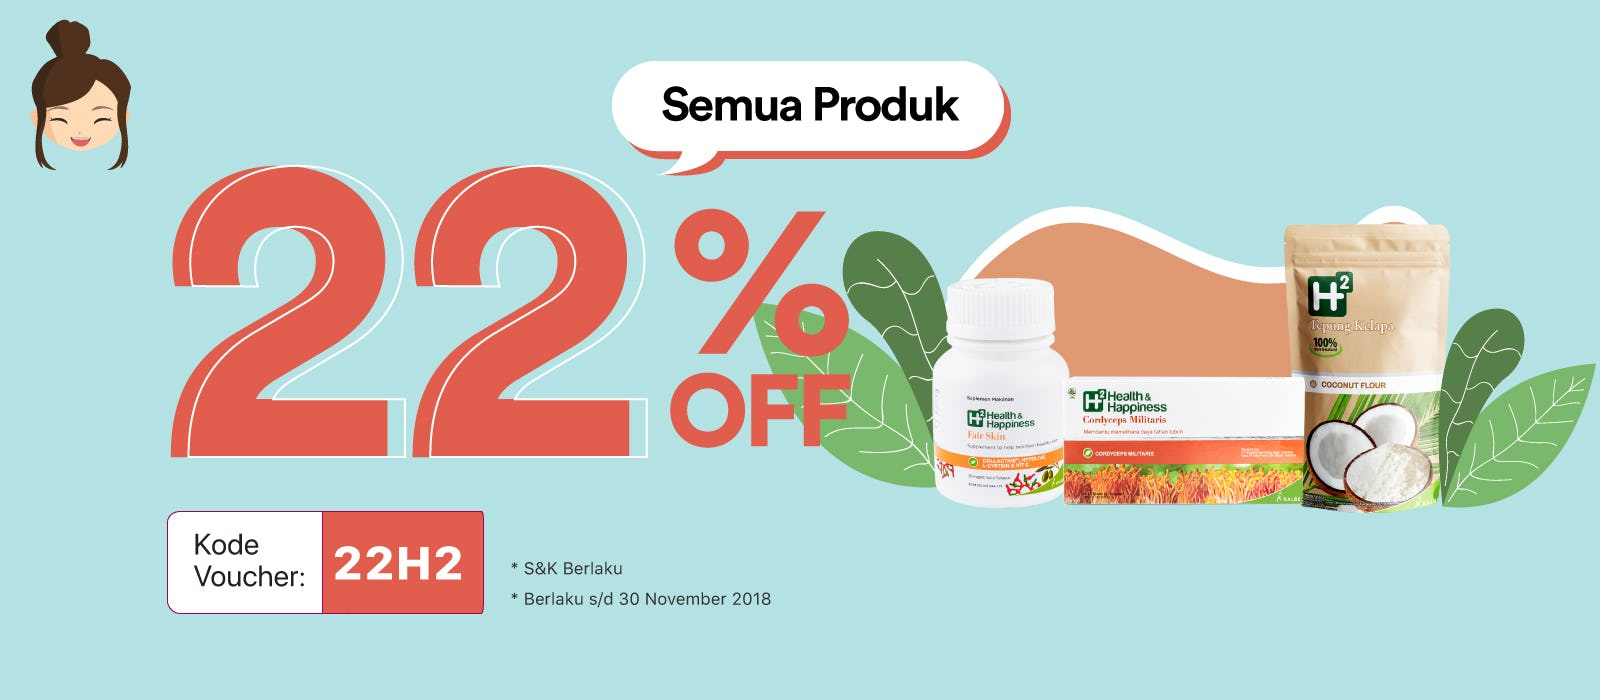 H2 Health & Happiness 22% Off